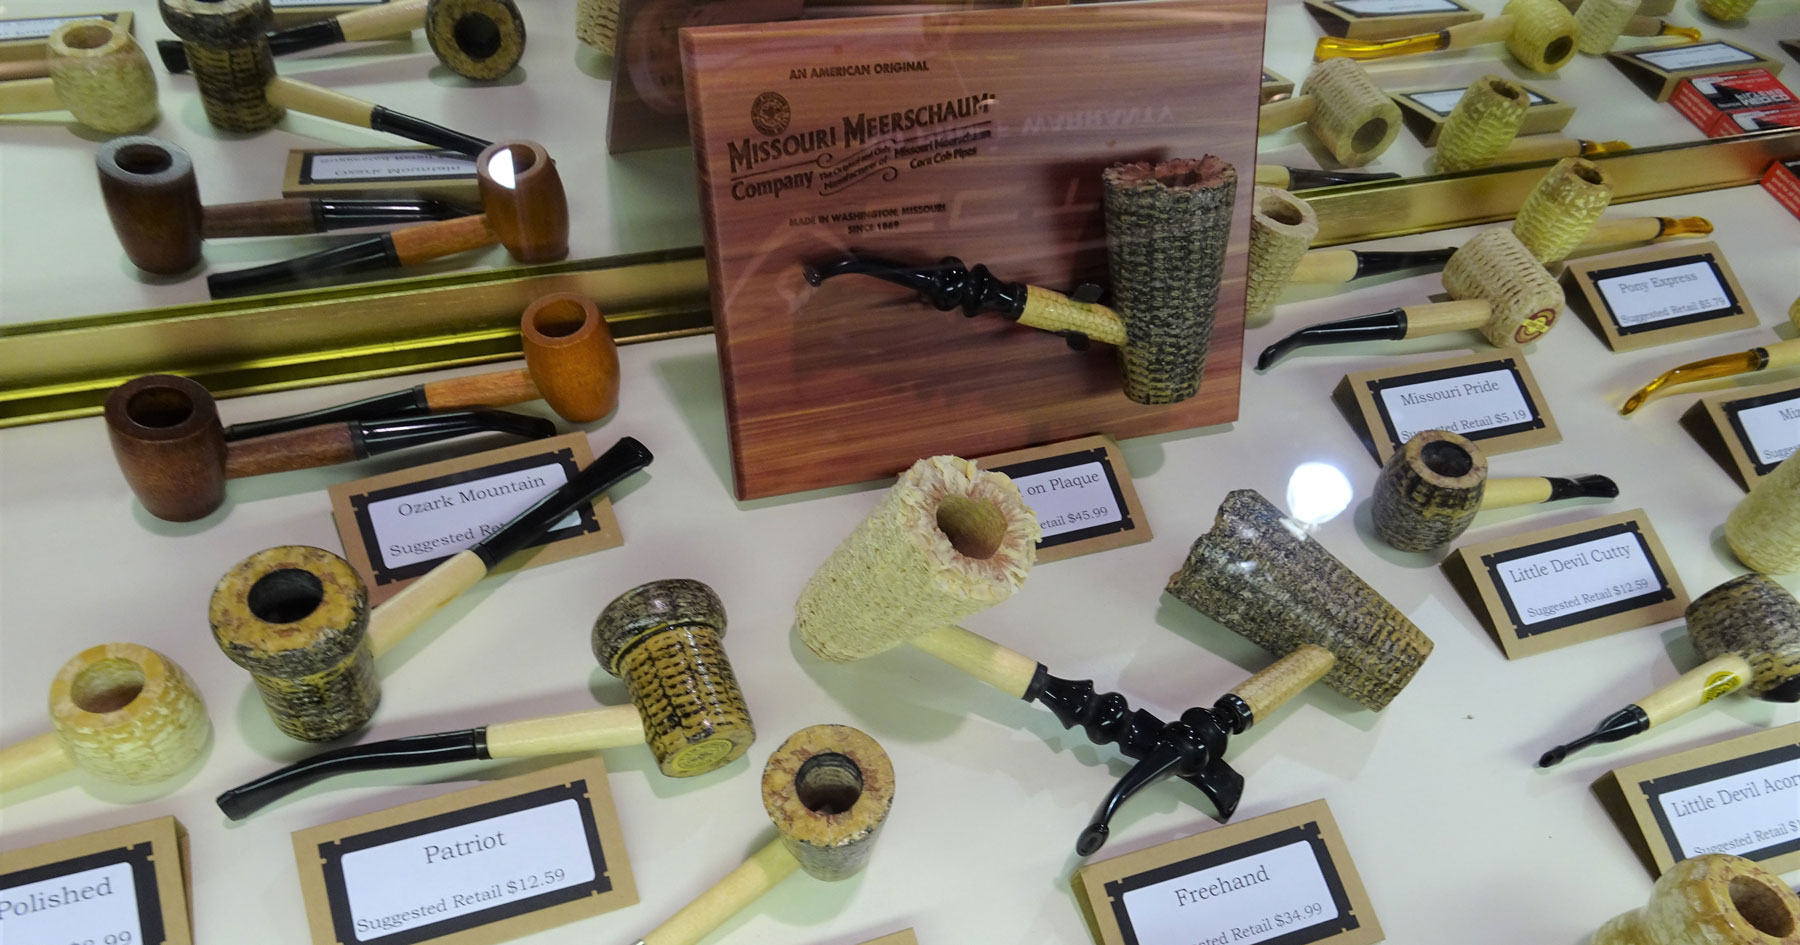 missouri meerschaum co